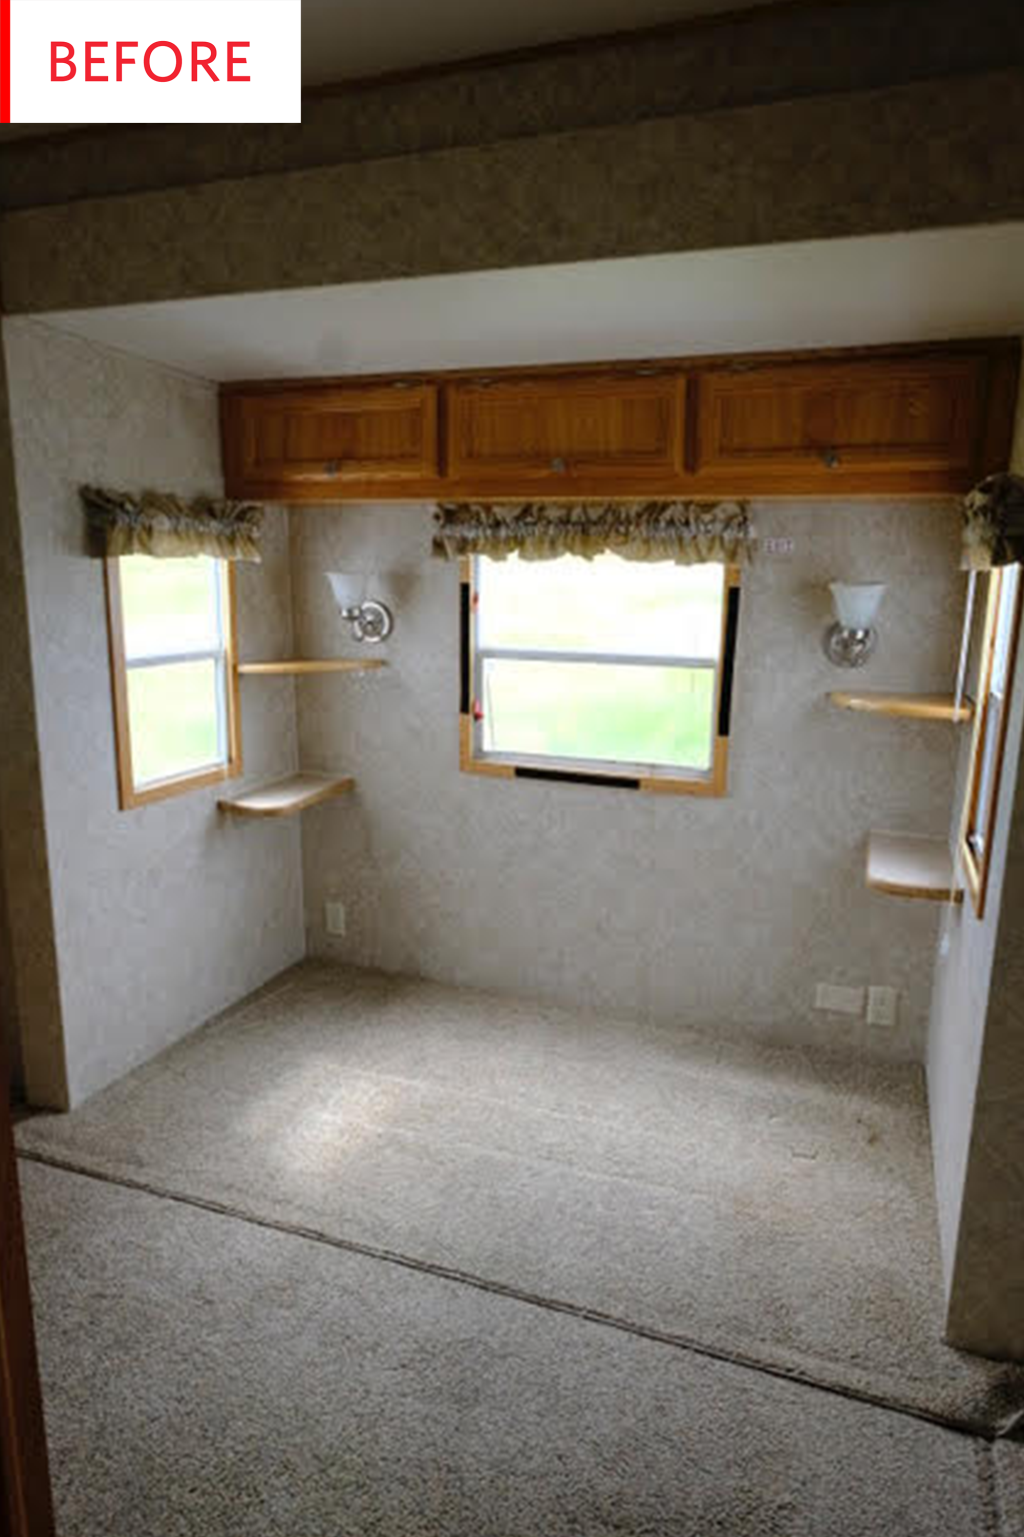 Before and After: This RV's Cozy Bedroom Packs Some Enviable Secret Storage